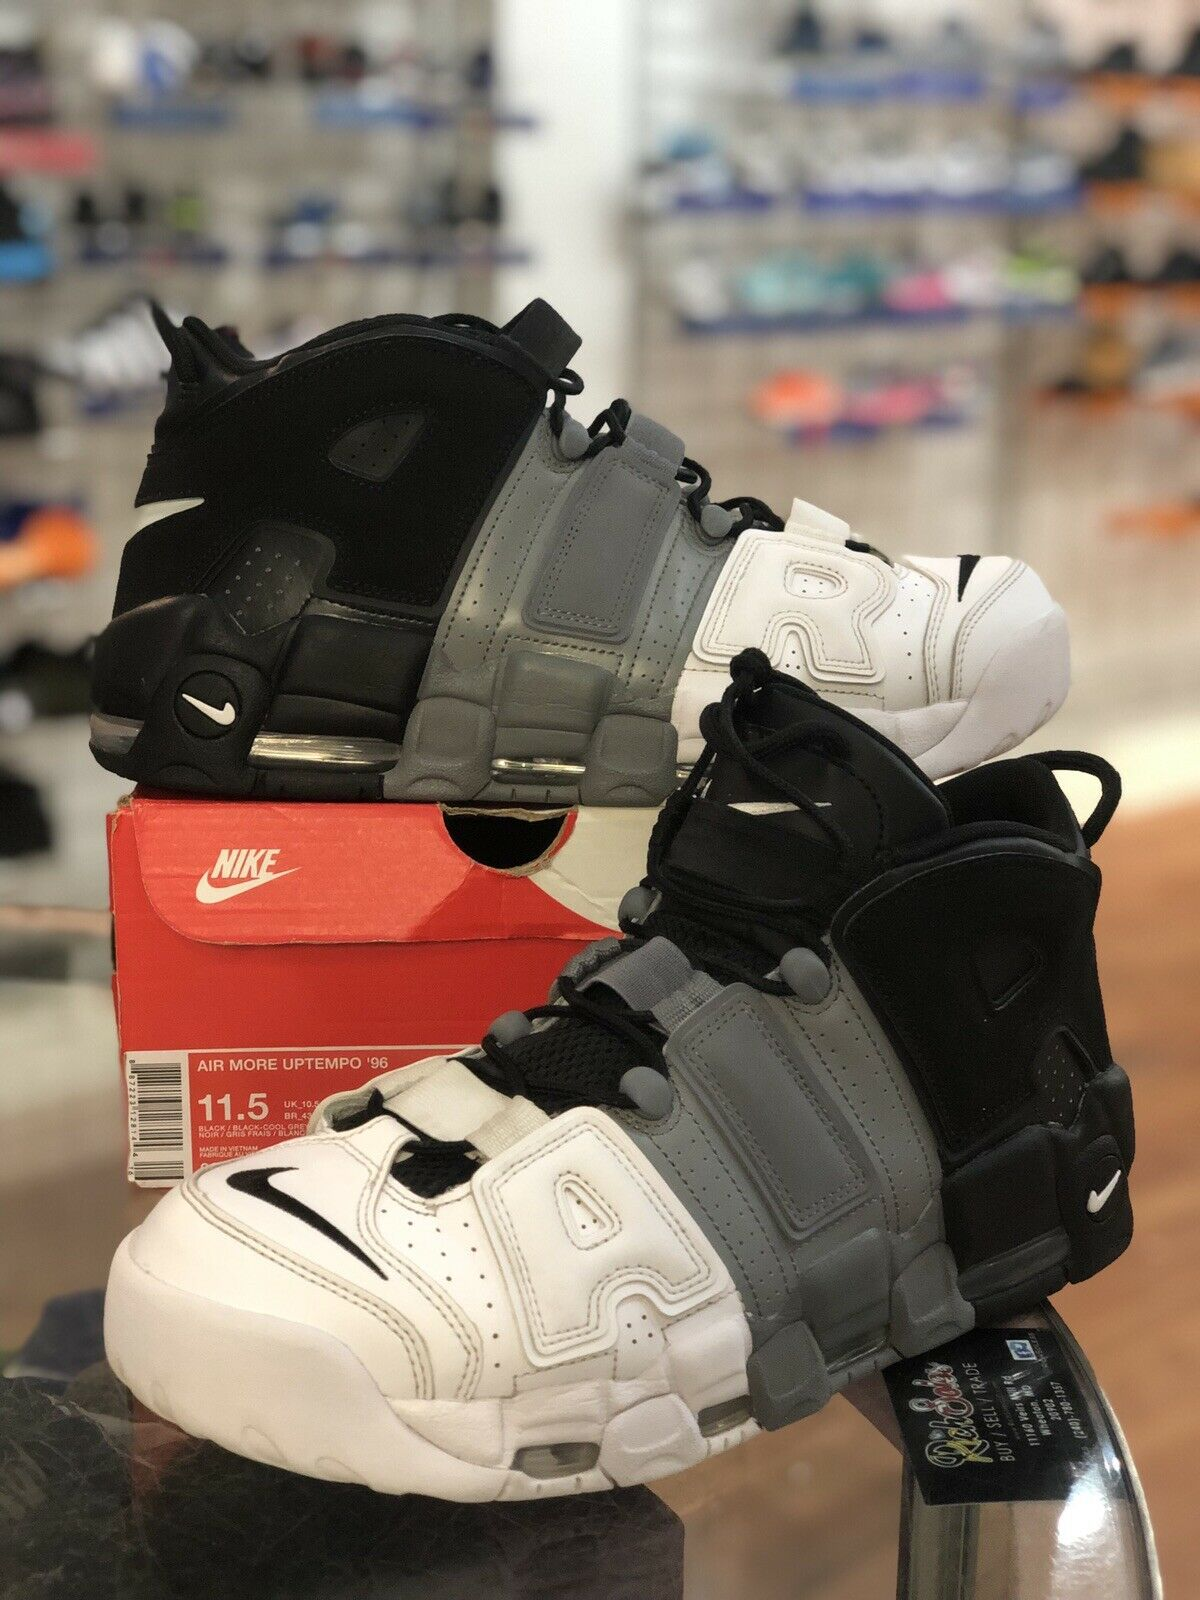 fd65a0b06e NIKE AIR MORE UPTEMPO BLACK COOL GREY WHITE 921948-002 SIZE 11.5 '96  TRI-COLOR ntalgh1175-Athletic Shoes